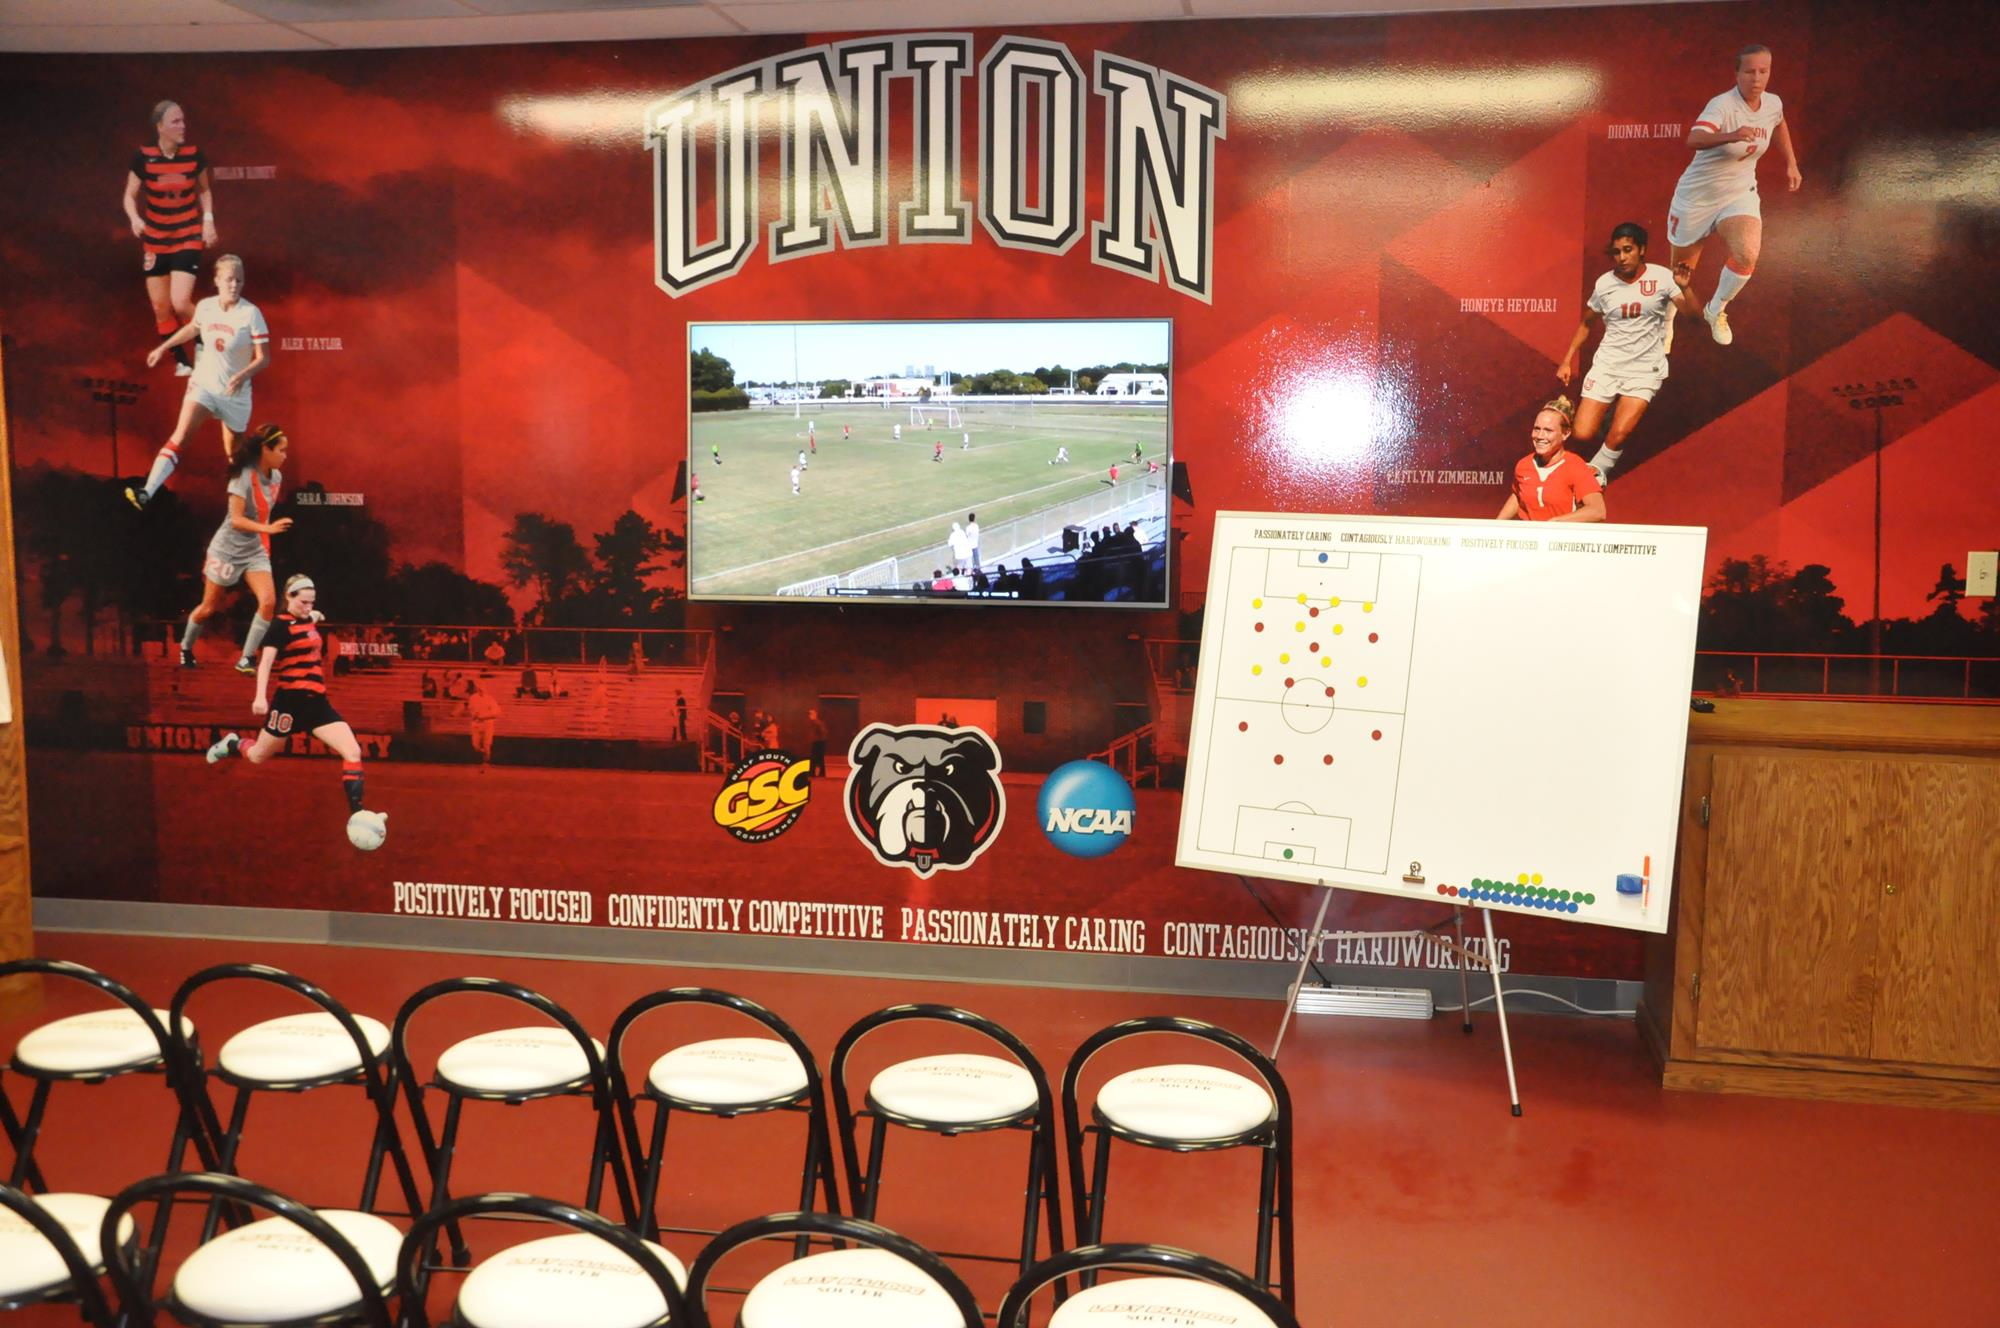 Union University Soccer Wall Murals Cody R Cunningham